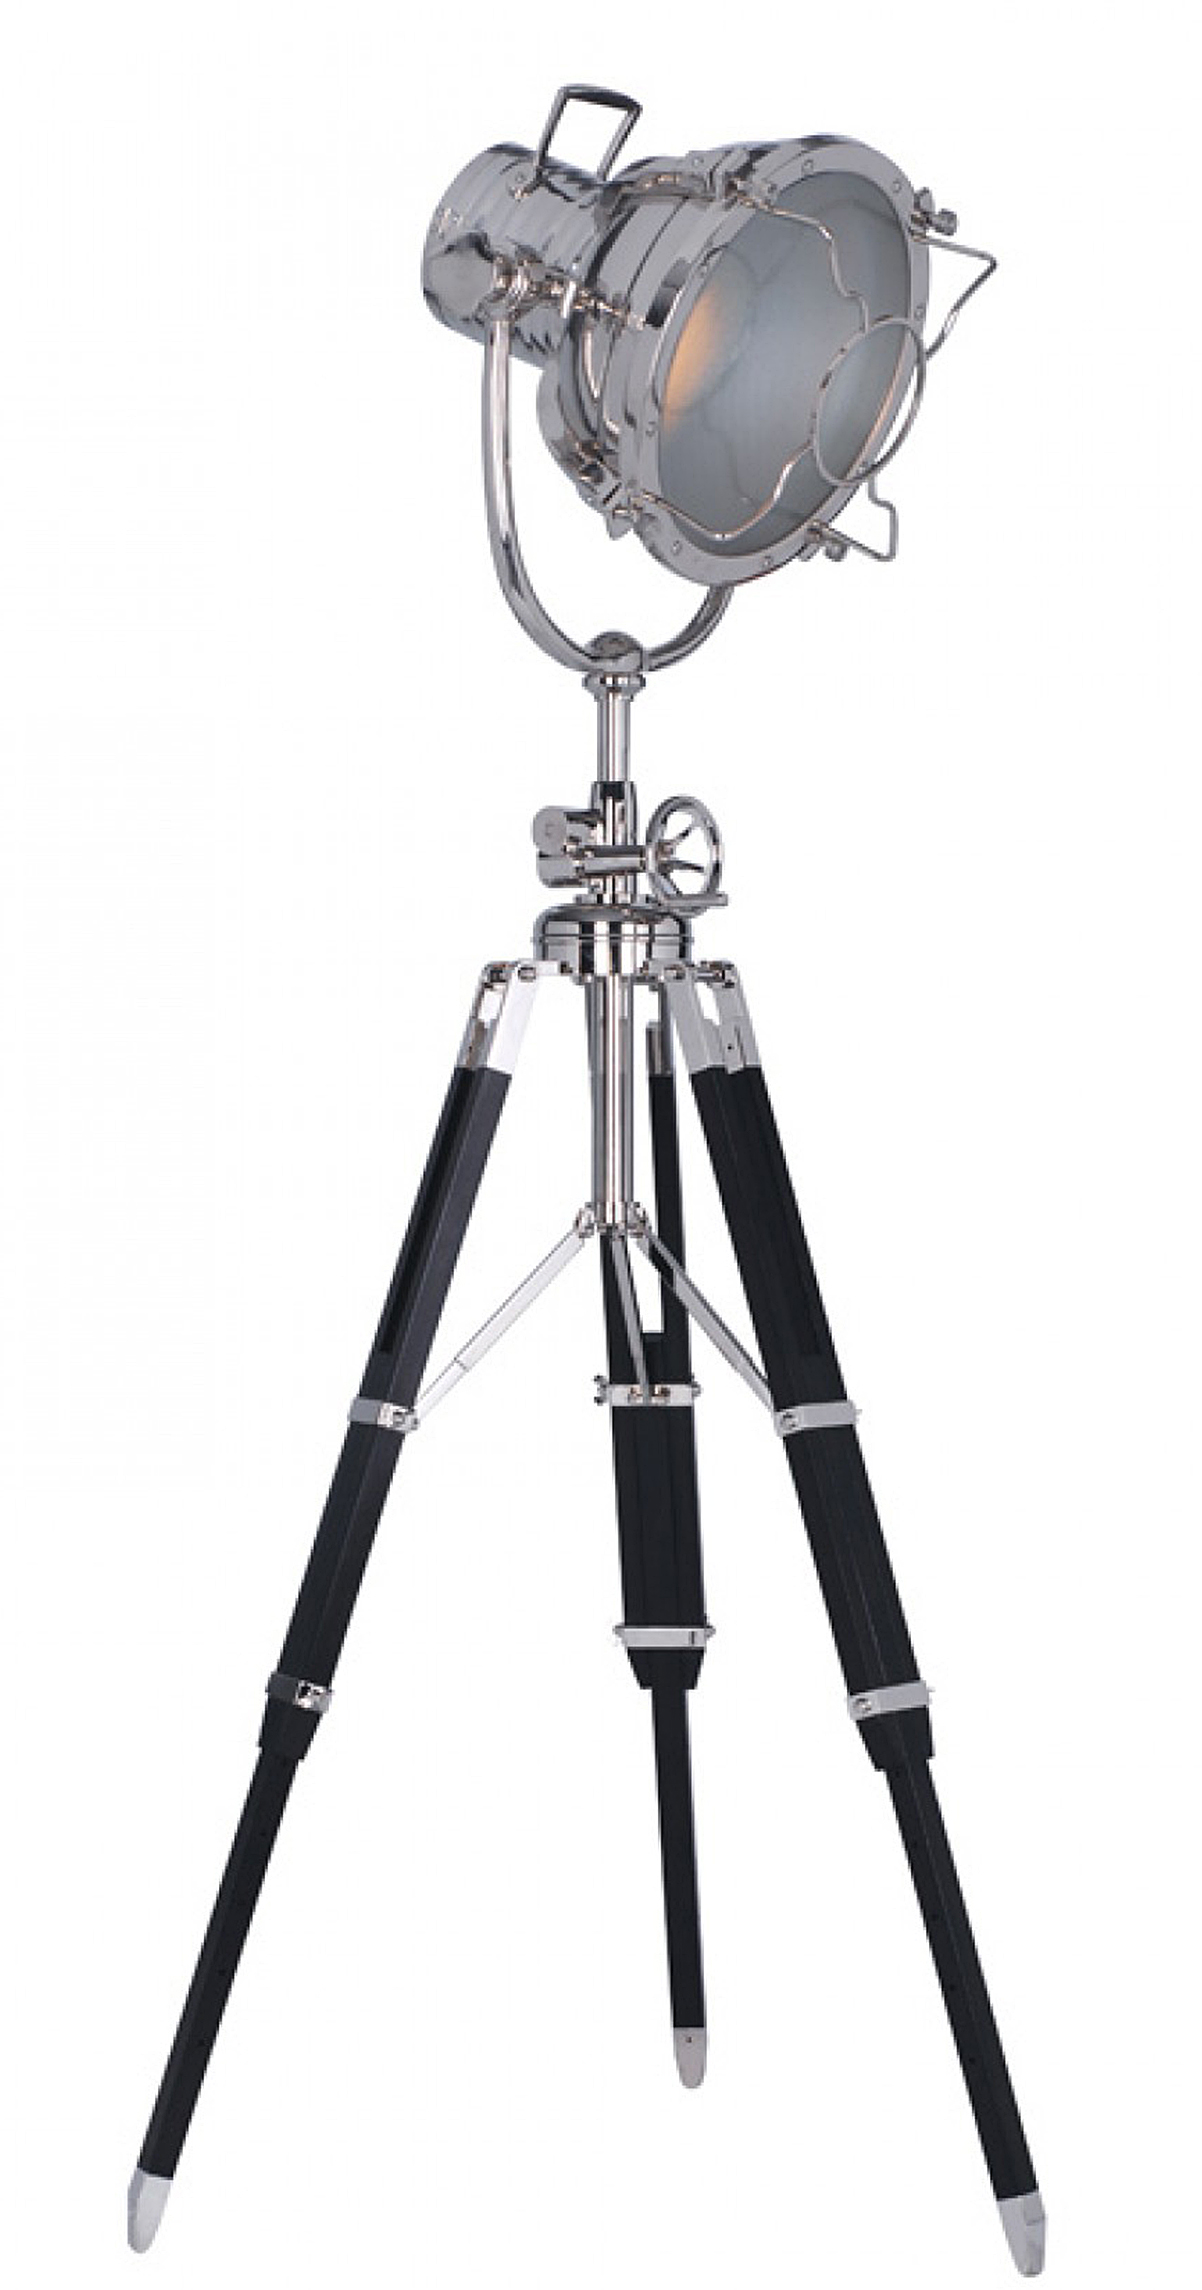 If you're looking for a movie style floor lamp for your movie themed style room, check out this tripod movie floor lamp available at AdvancedInteriorDesigns.com